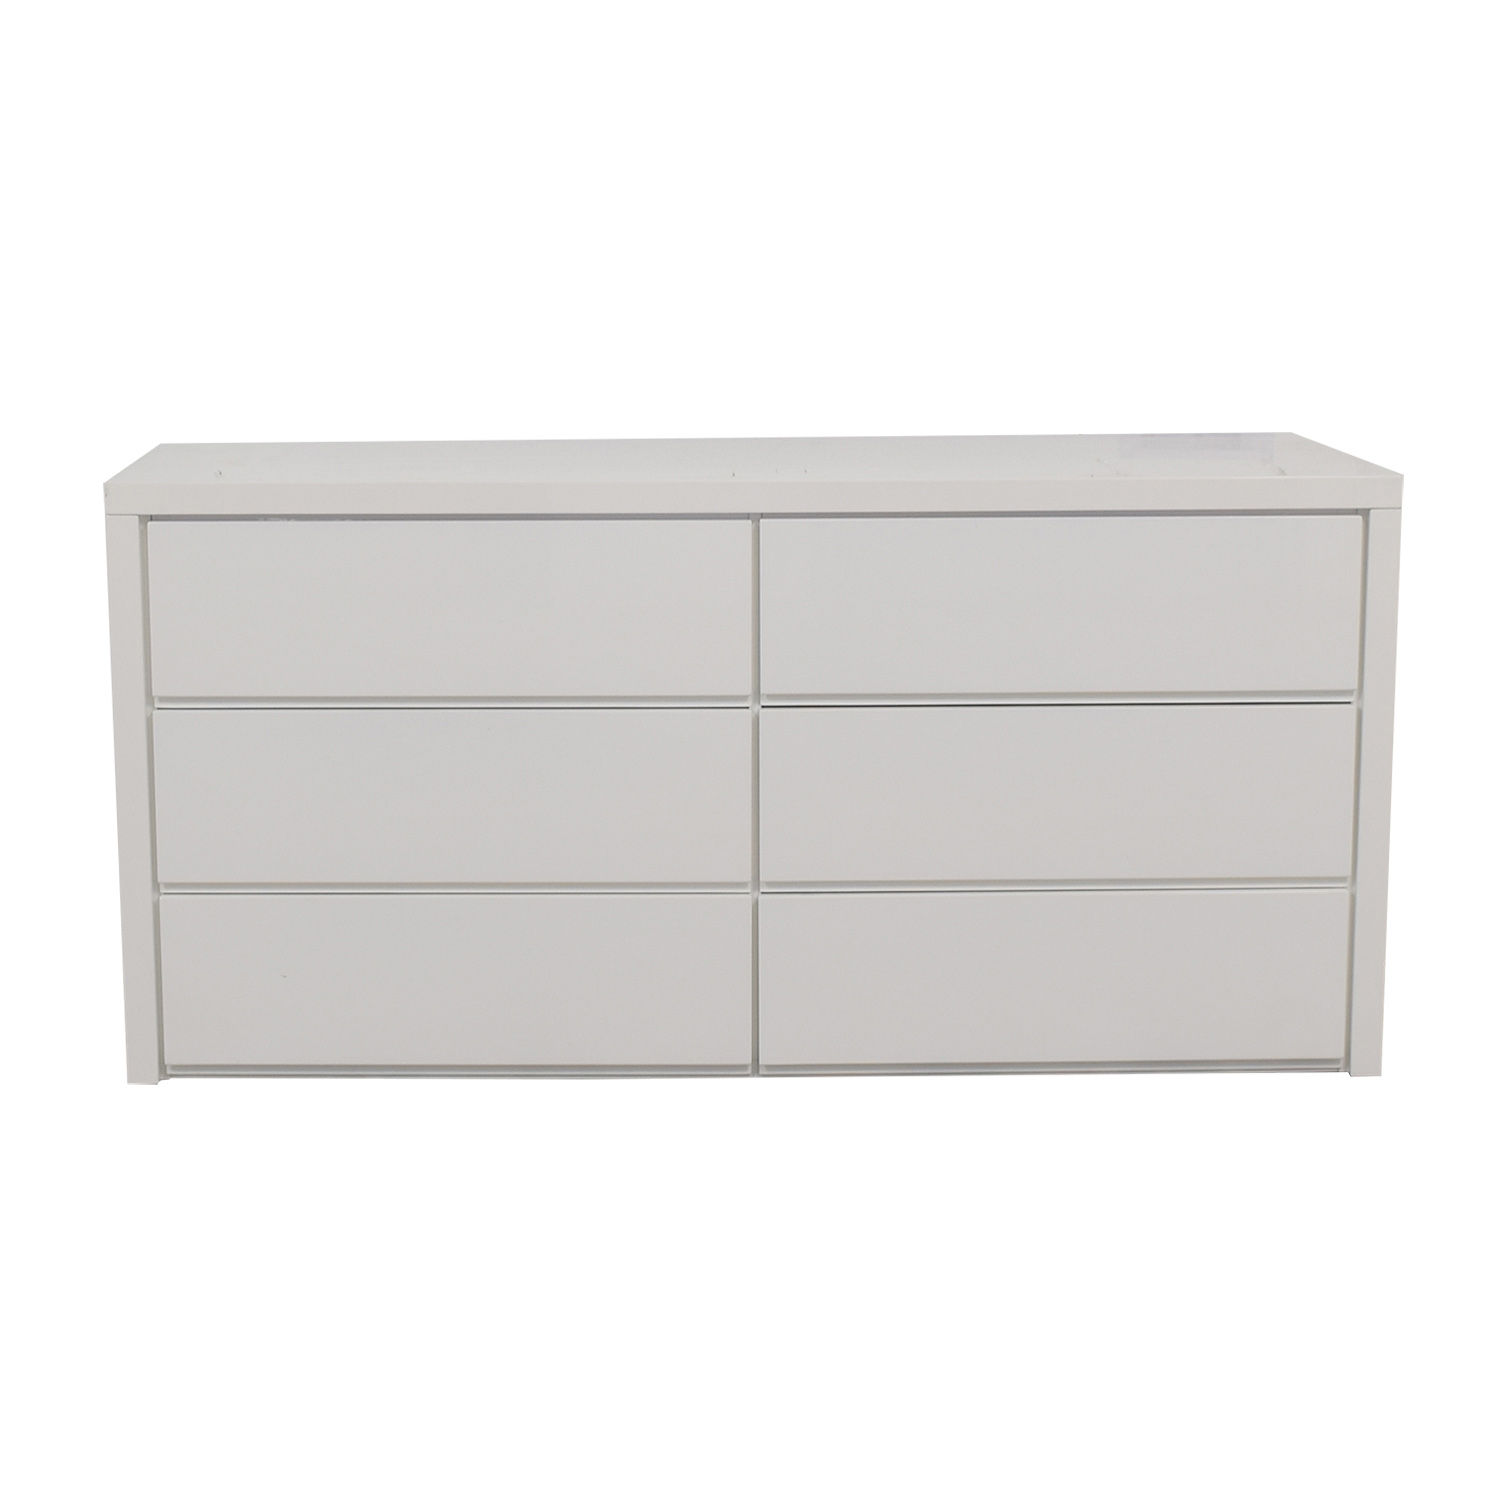 Modani Dino White Six-Drawer Dresser Modani